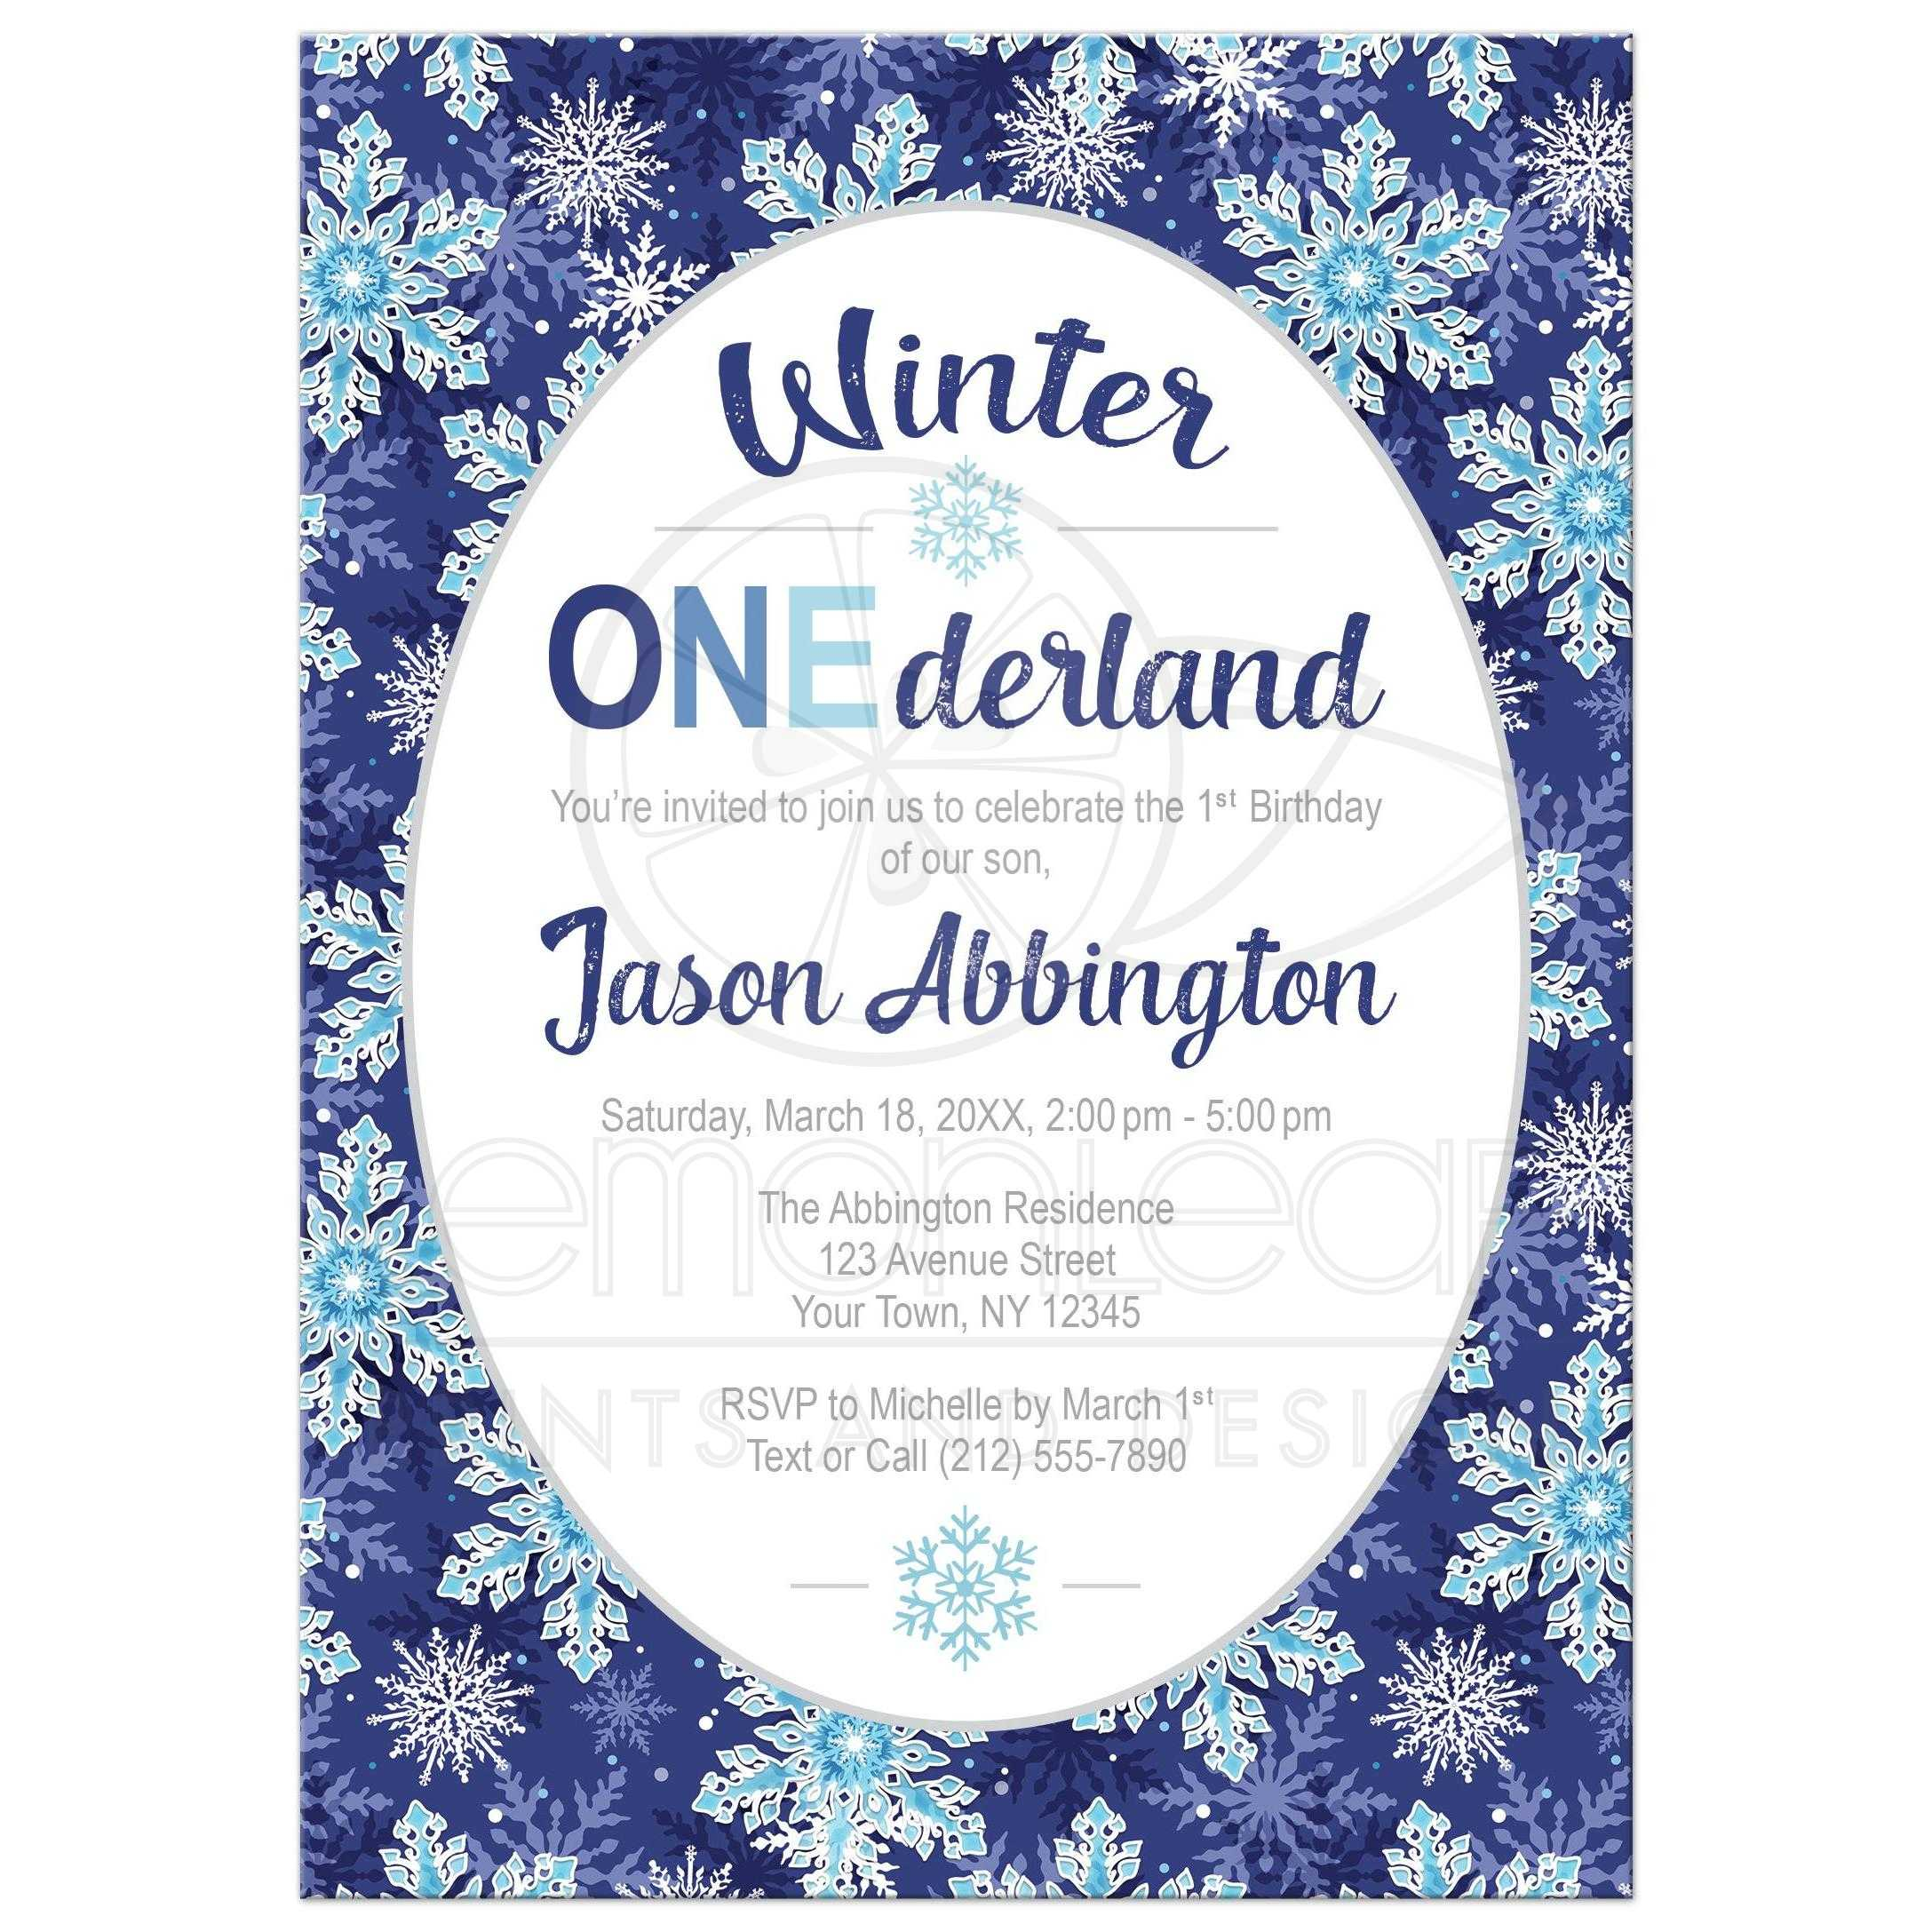 Winter Onederland Invitations Navy Blue Snowflake 1st Birthday